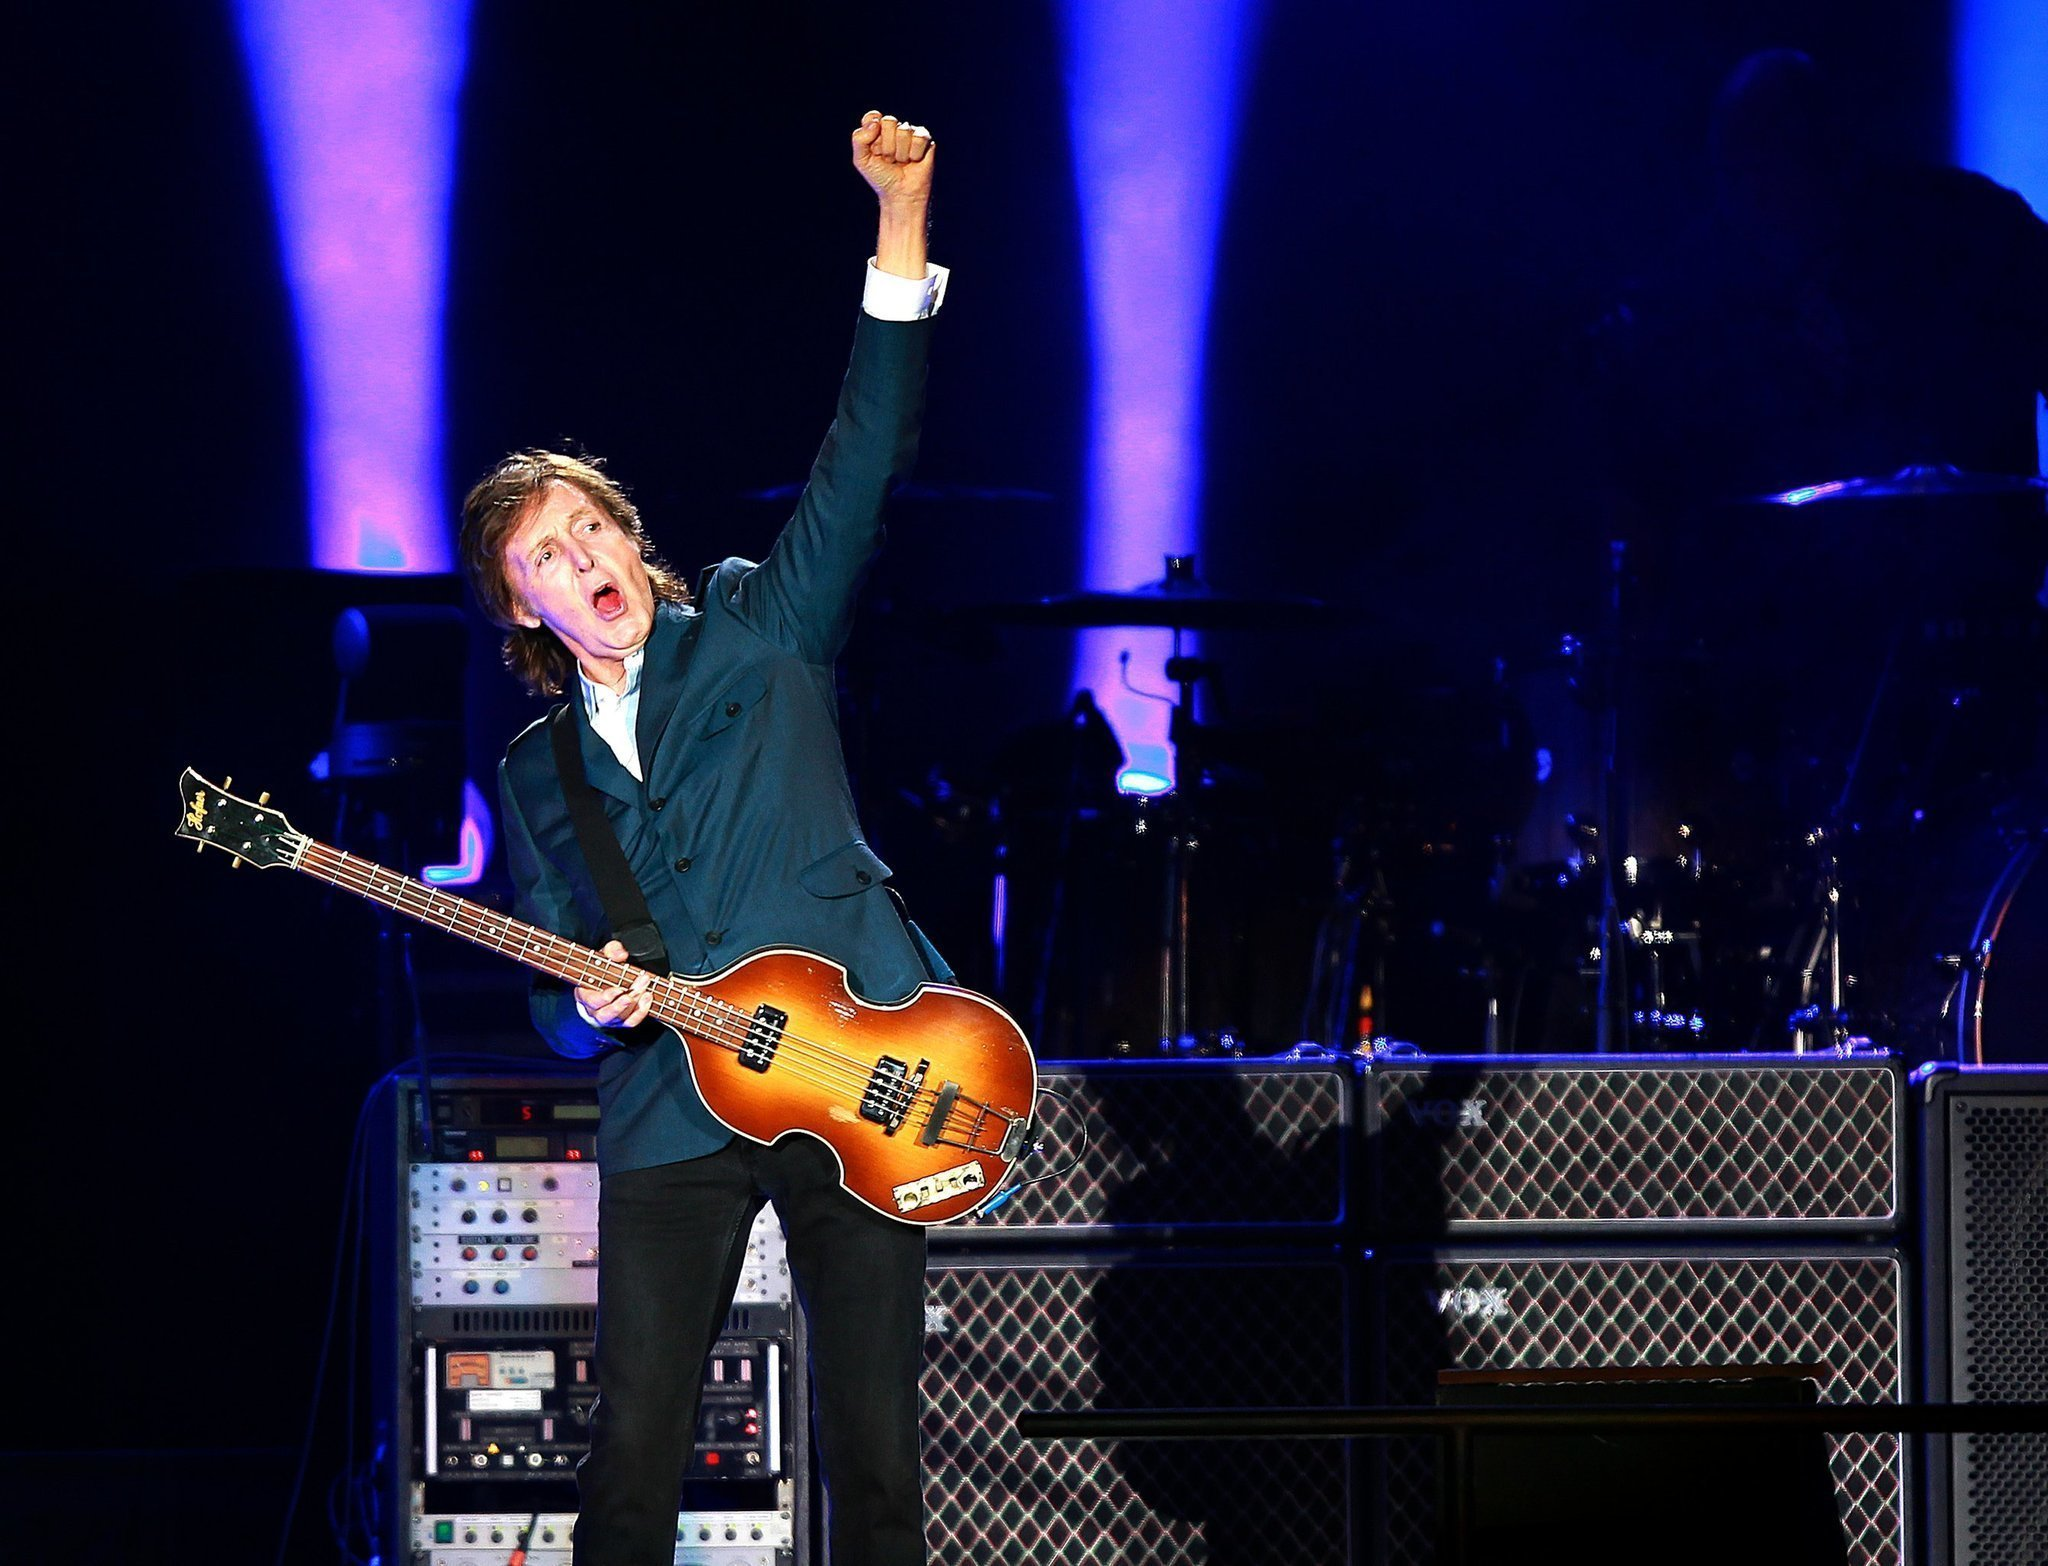 Paul Mccartney Wowed A Sell Out Crowd Of 42000 At His Petco Park